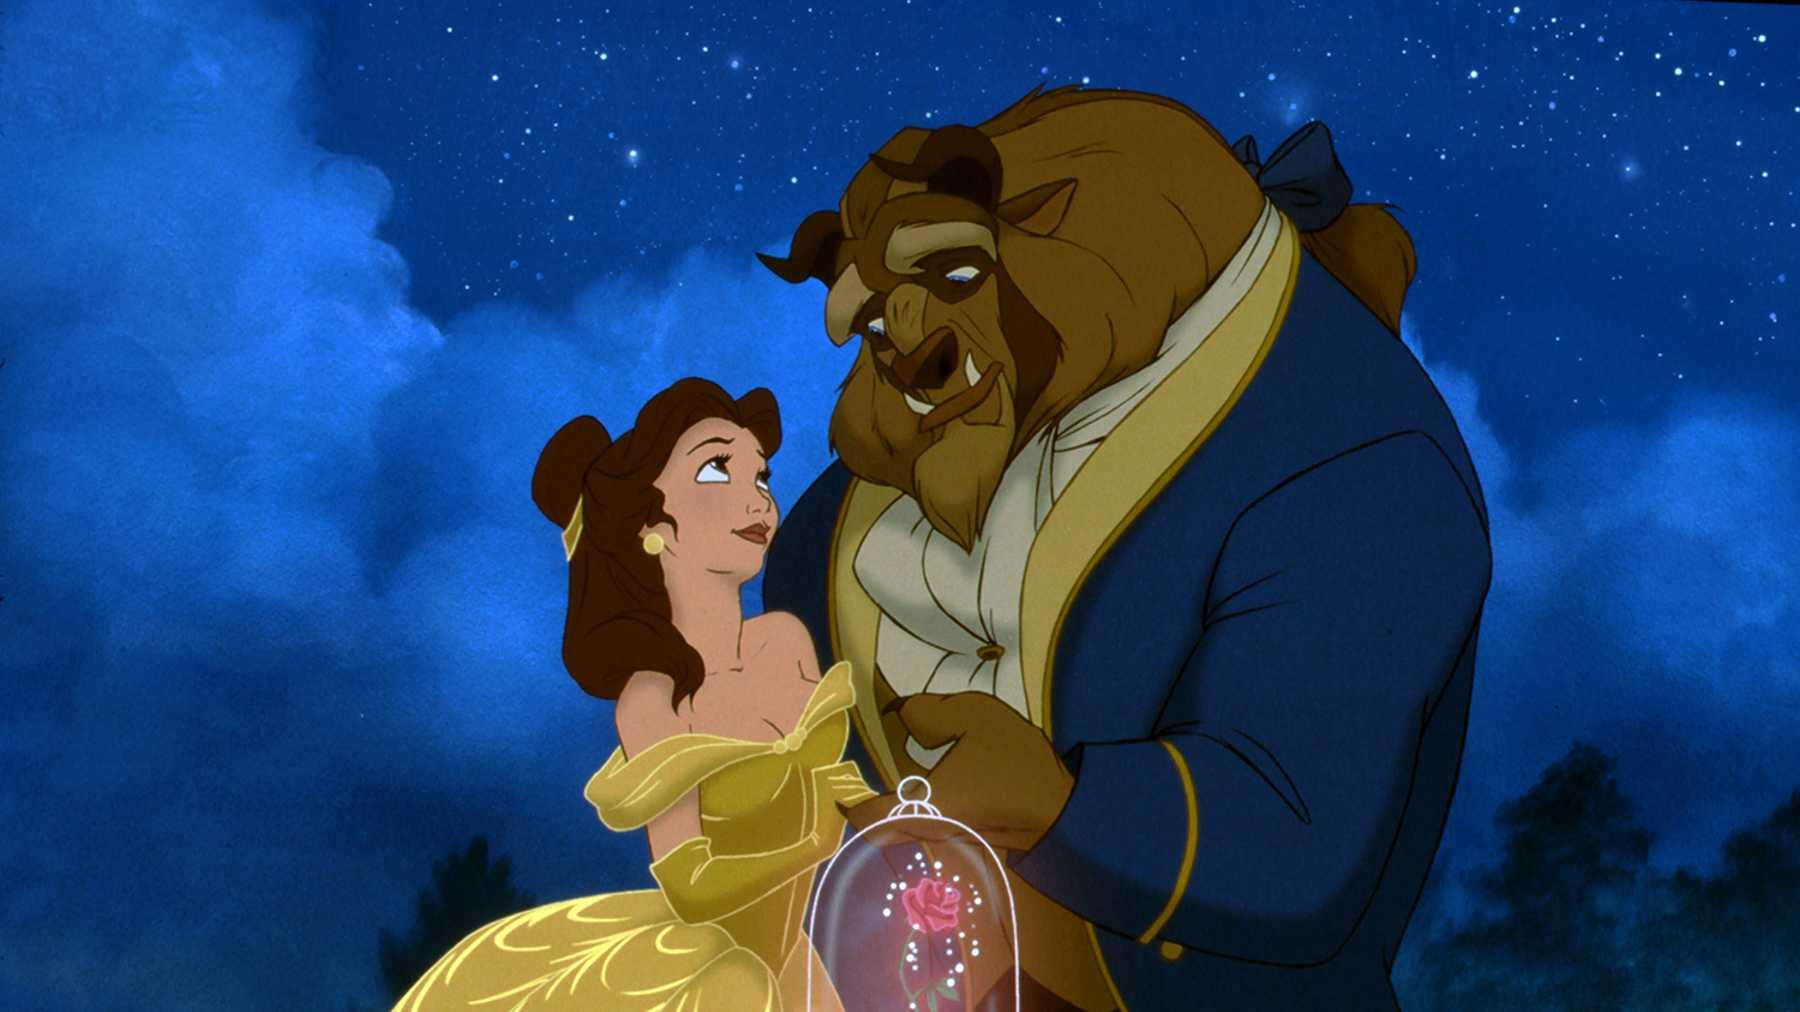 beauty and the beast movie online free 1991